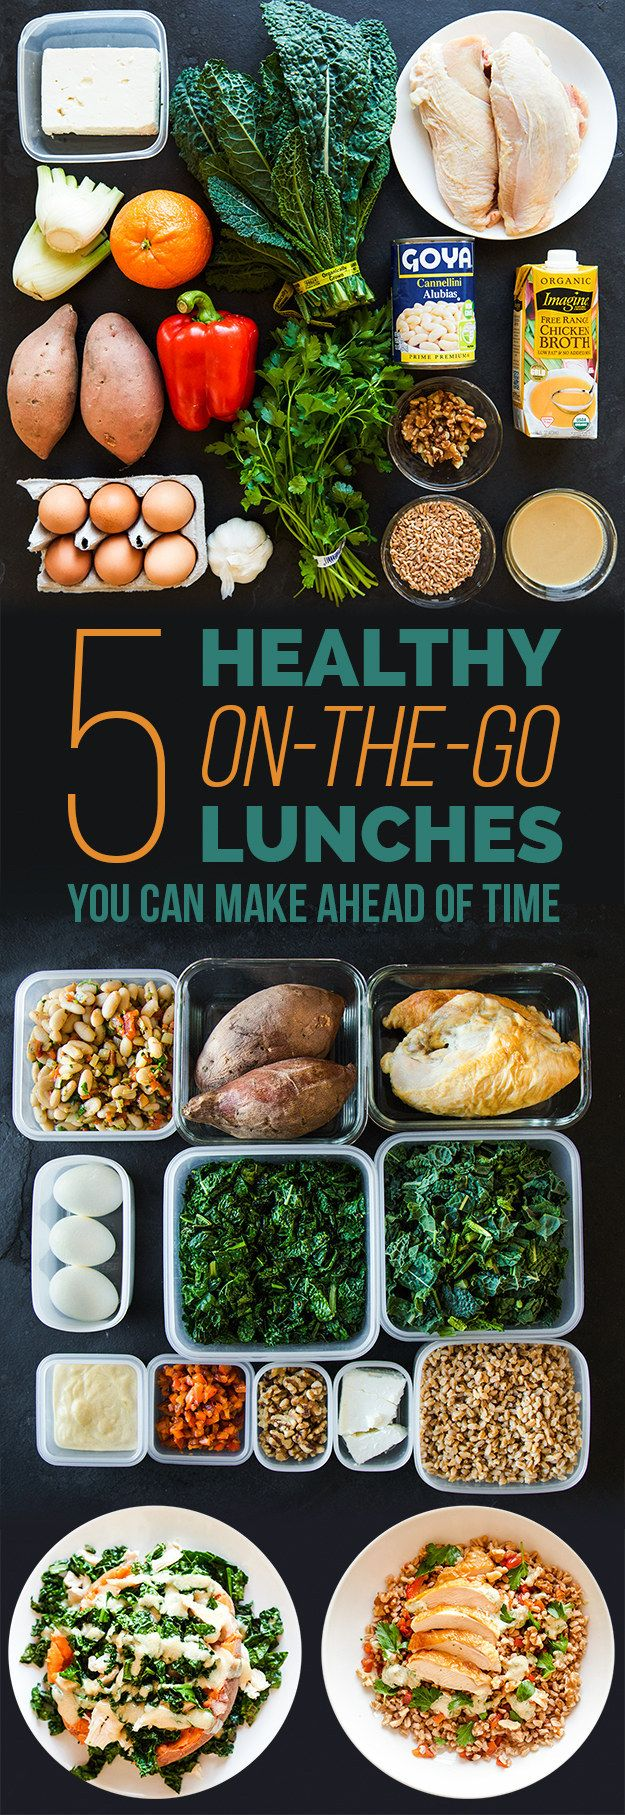 Awesome lunches, plus a complete guide to shopping, meal prep, and packing!